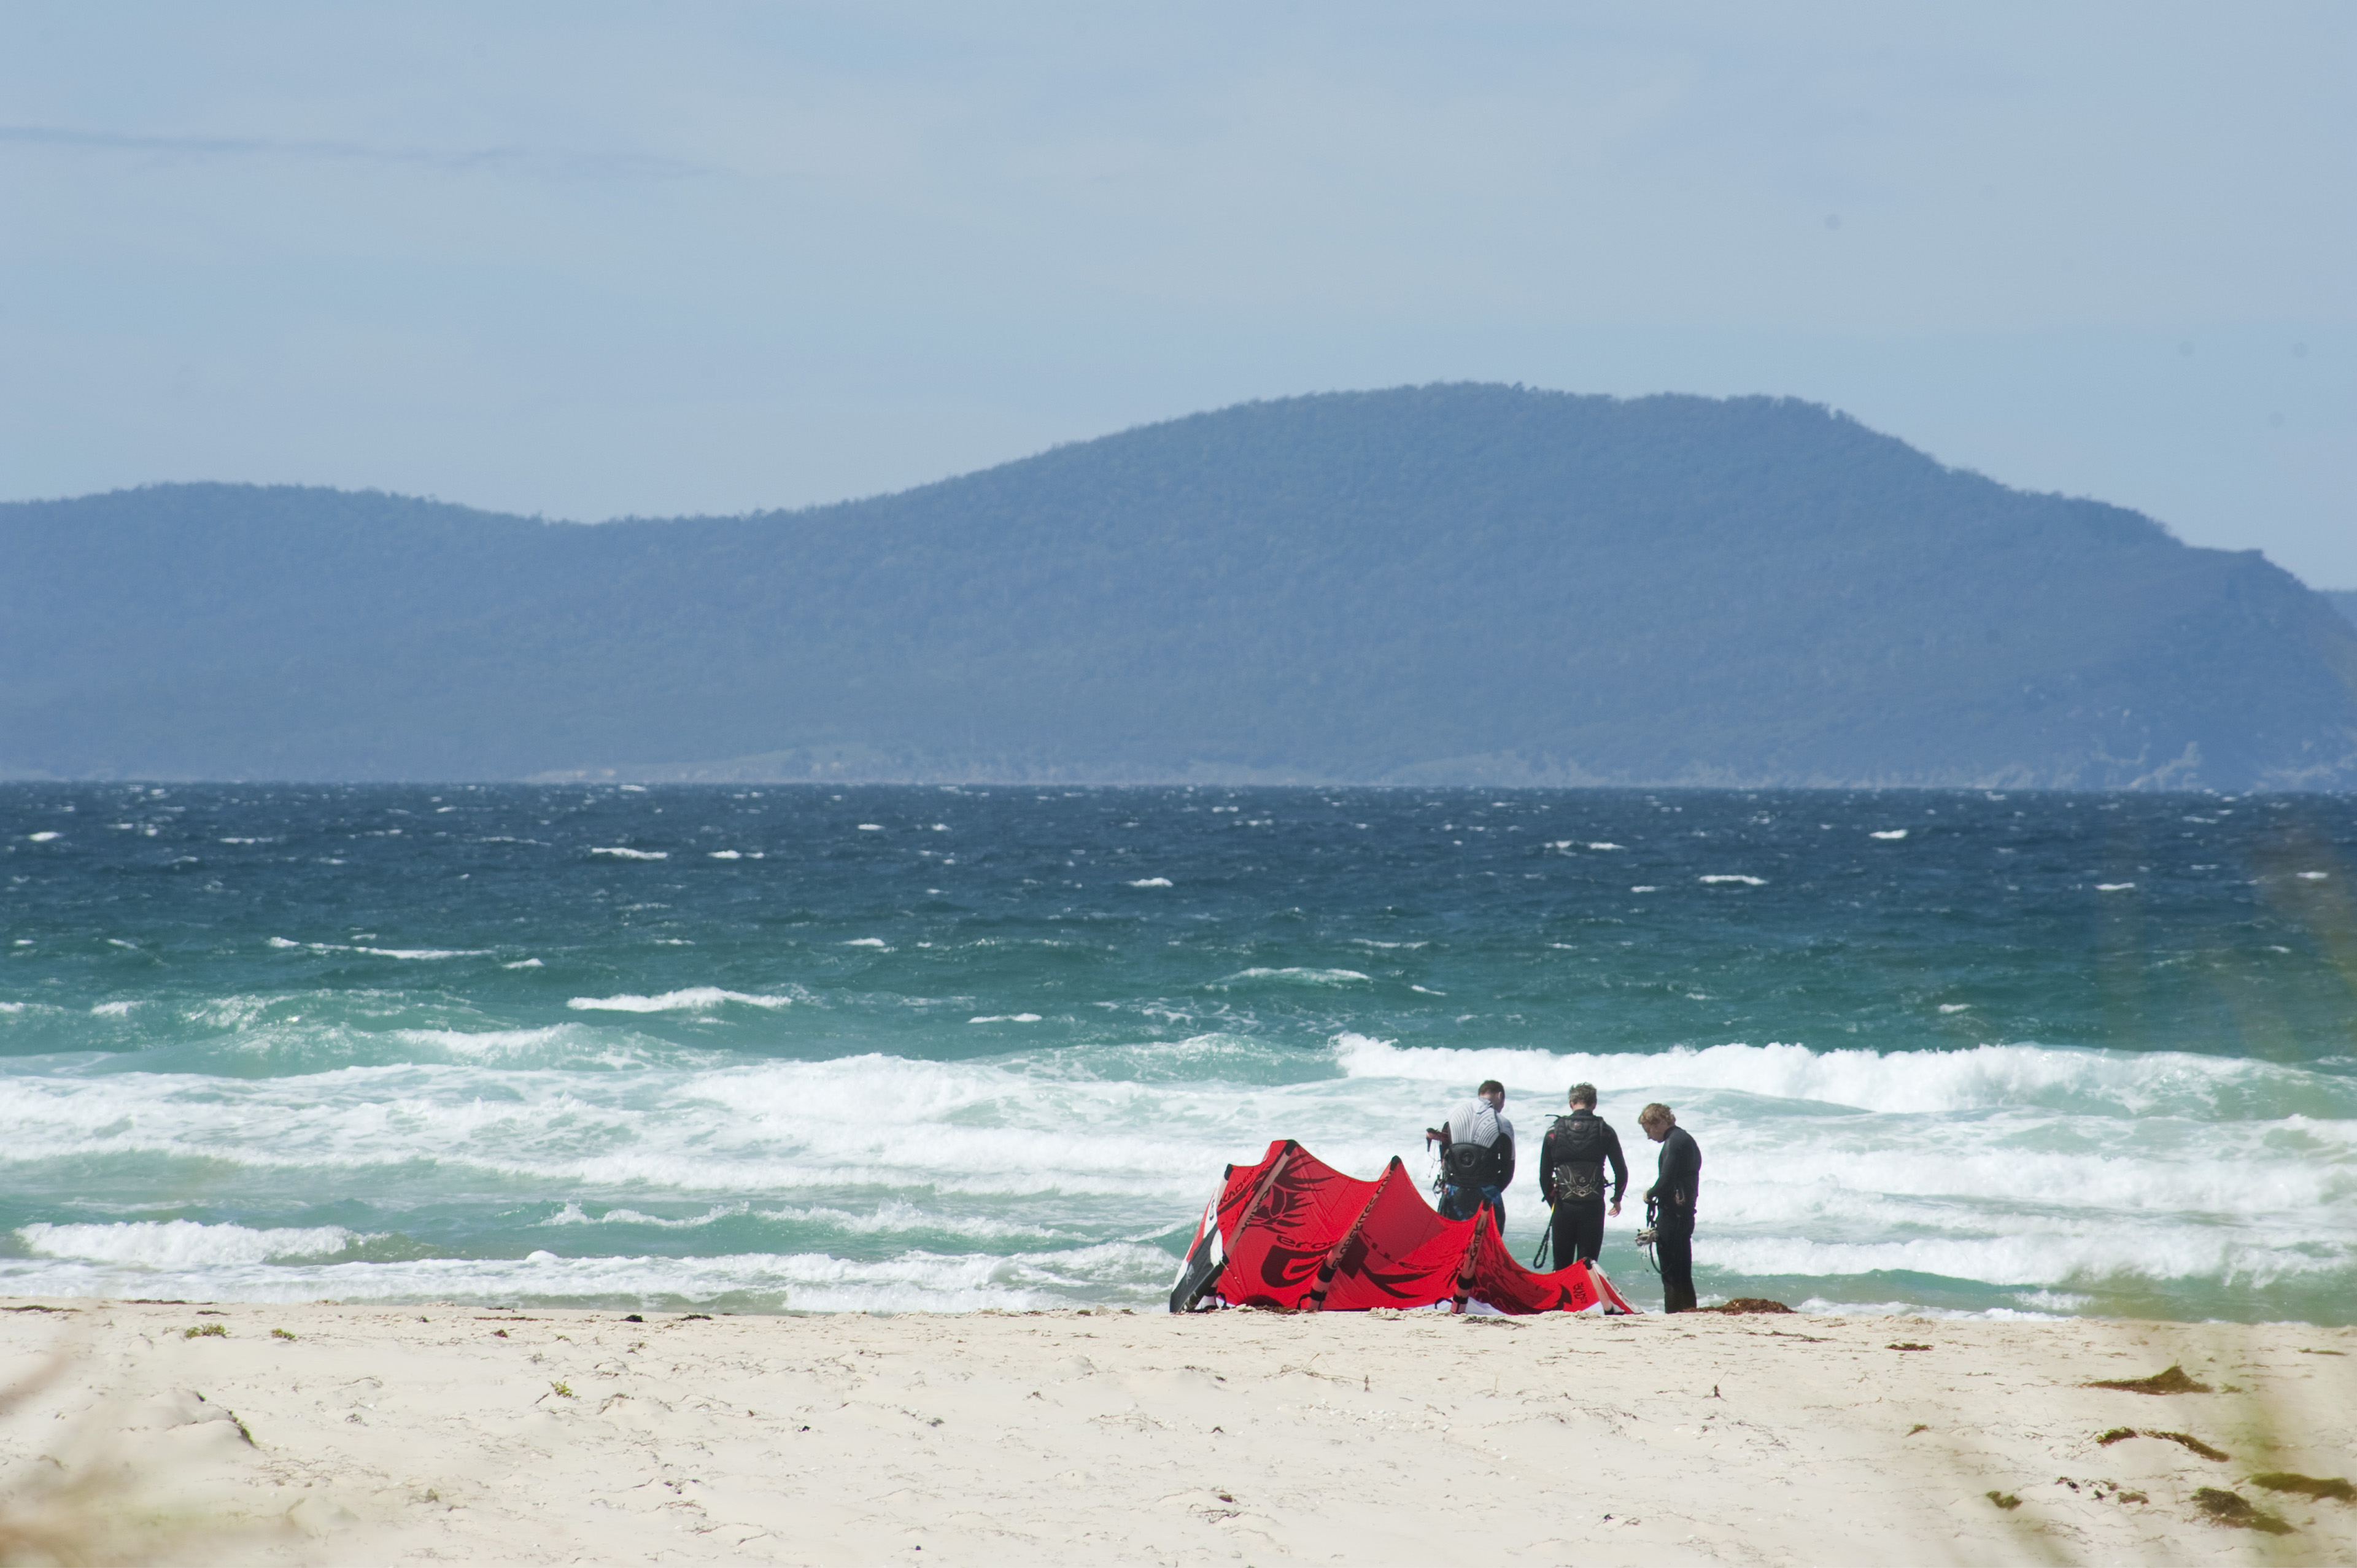 Kite surfers preparing their kite board on a sandy tropical beach with a wind swept ocean and mountain backdrop